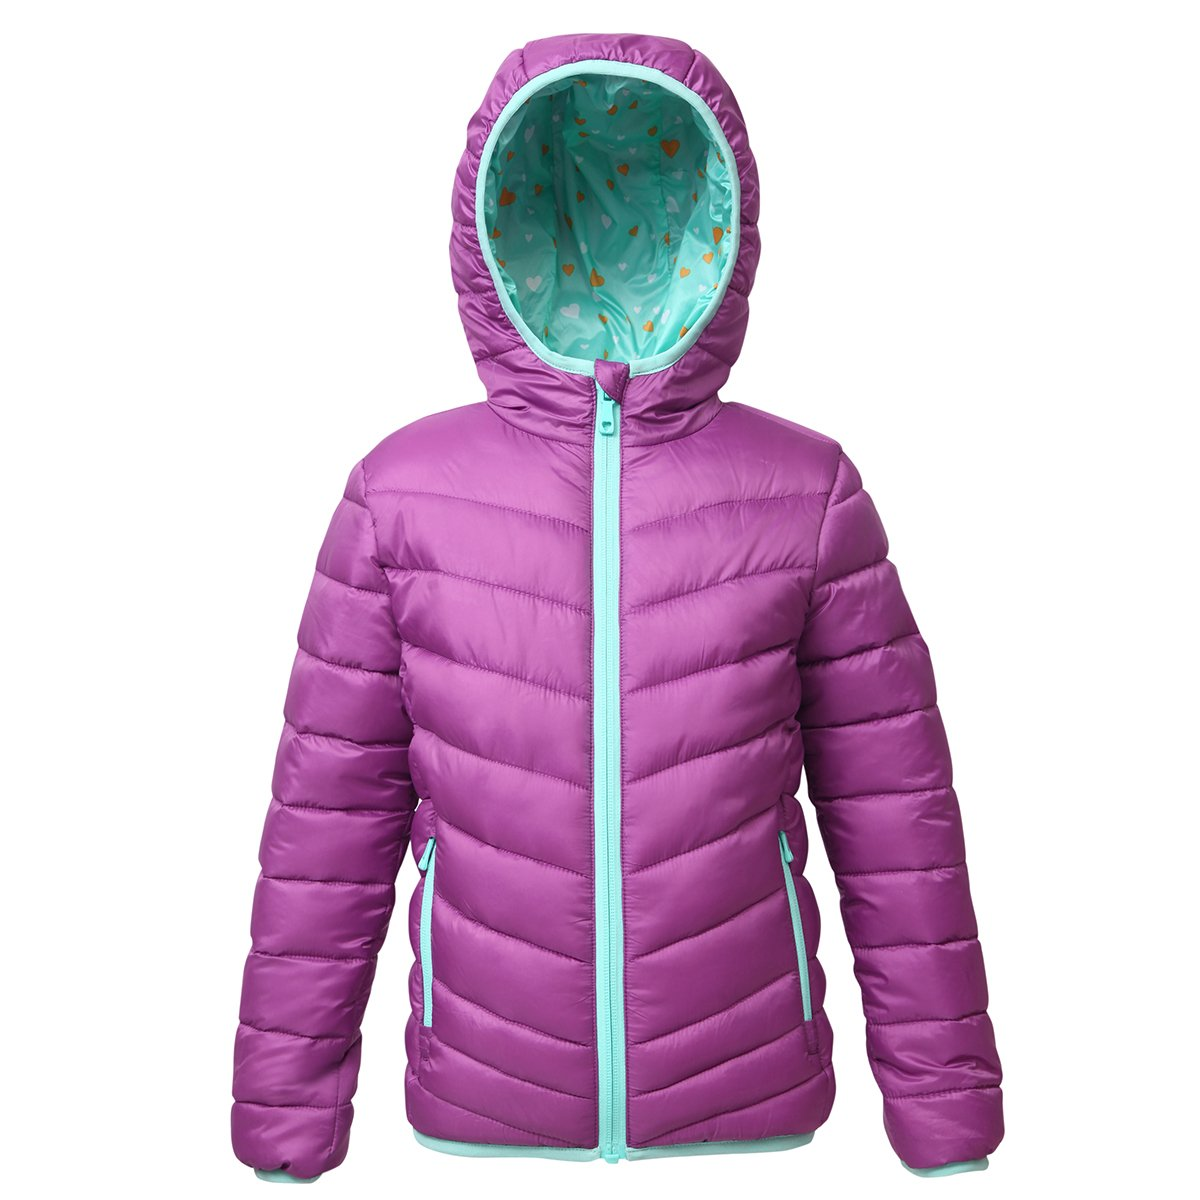 Rokka&Rolla Girls' Lightweight Reversible Water Resistant Hooded Quilted Poly Padded Puffer Jacket Mulberry by Rokka&Rolla